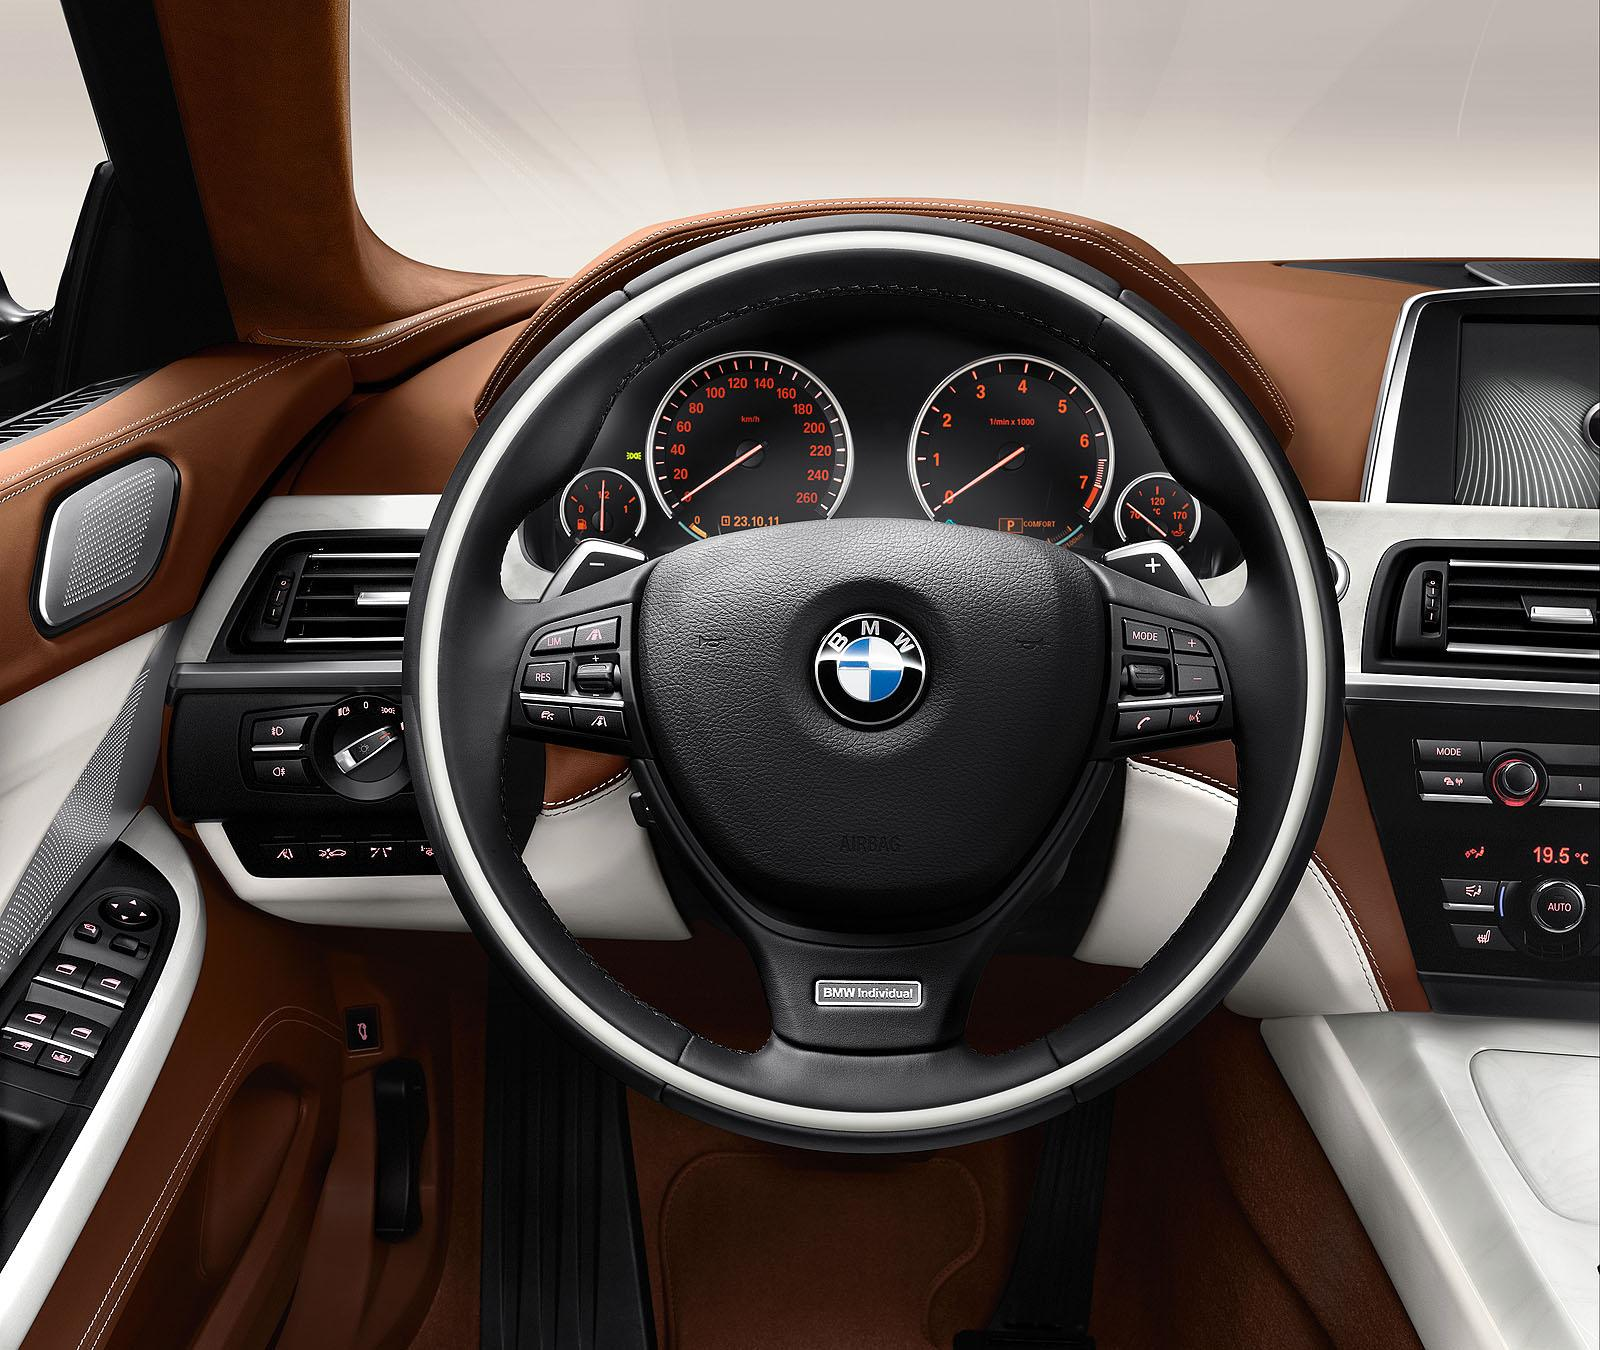 2013 BMW 6 Series Gran Coupe 5 2013 BMW 6 Series Gran Coupe with Child Restraint Systems